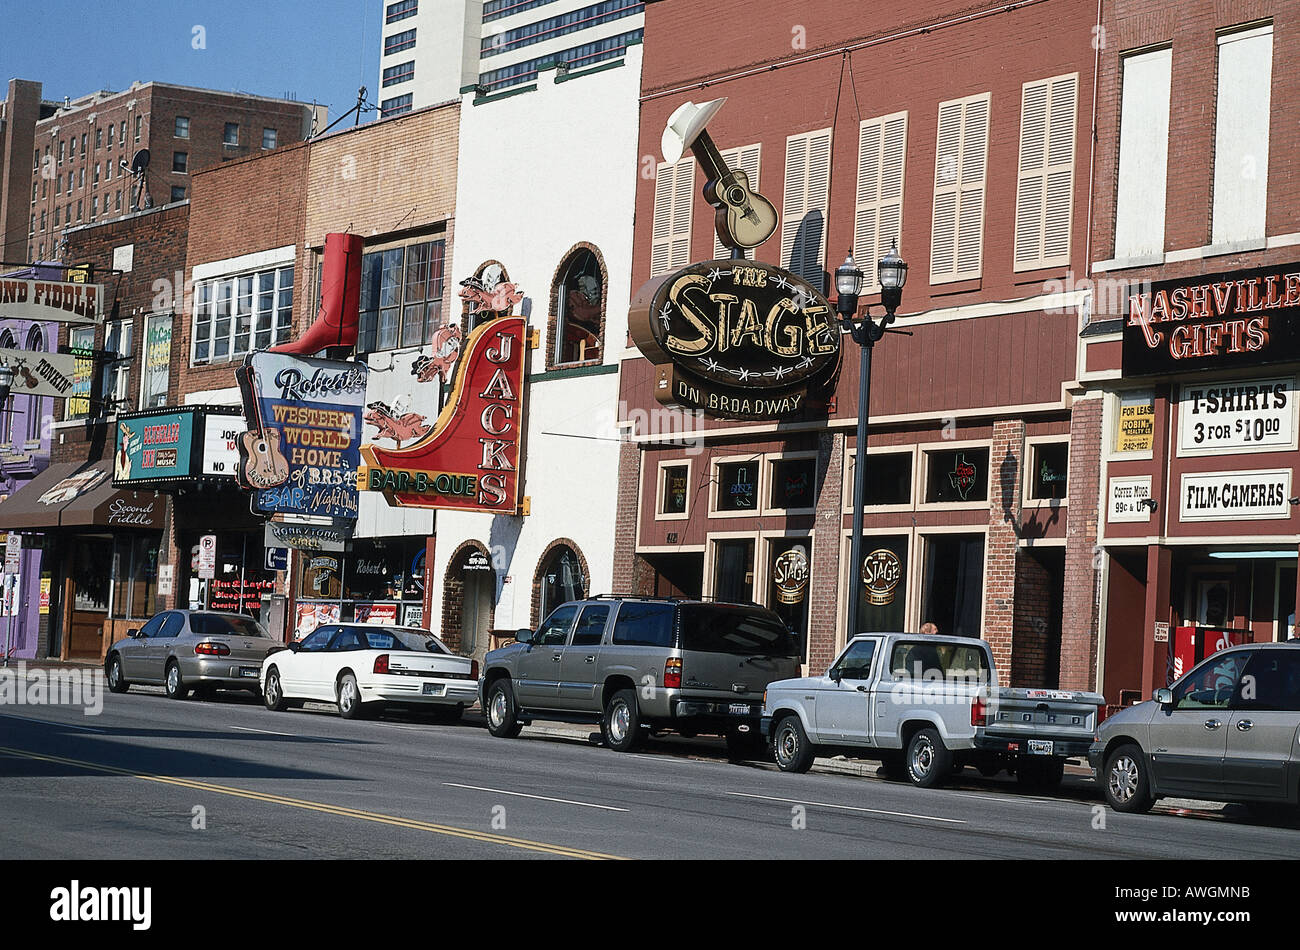 USA, Tennessee, Nashville, unlit neon signs above venues and stores lining downtown street with parked vehicles below - Stock Image